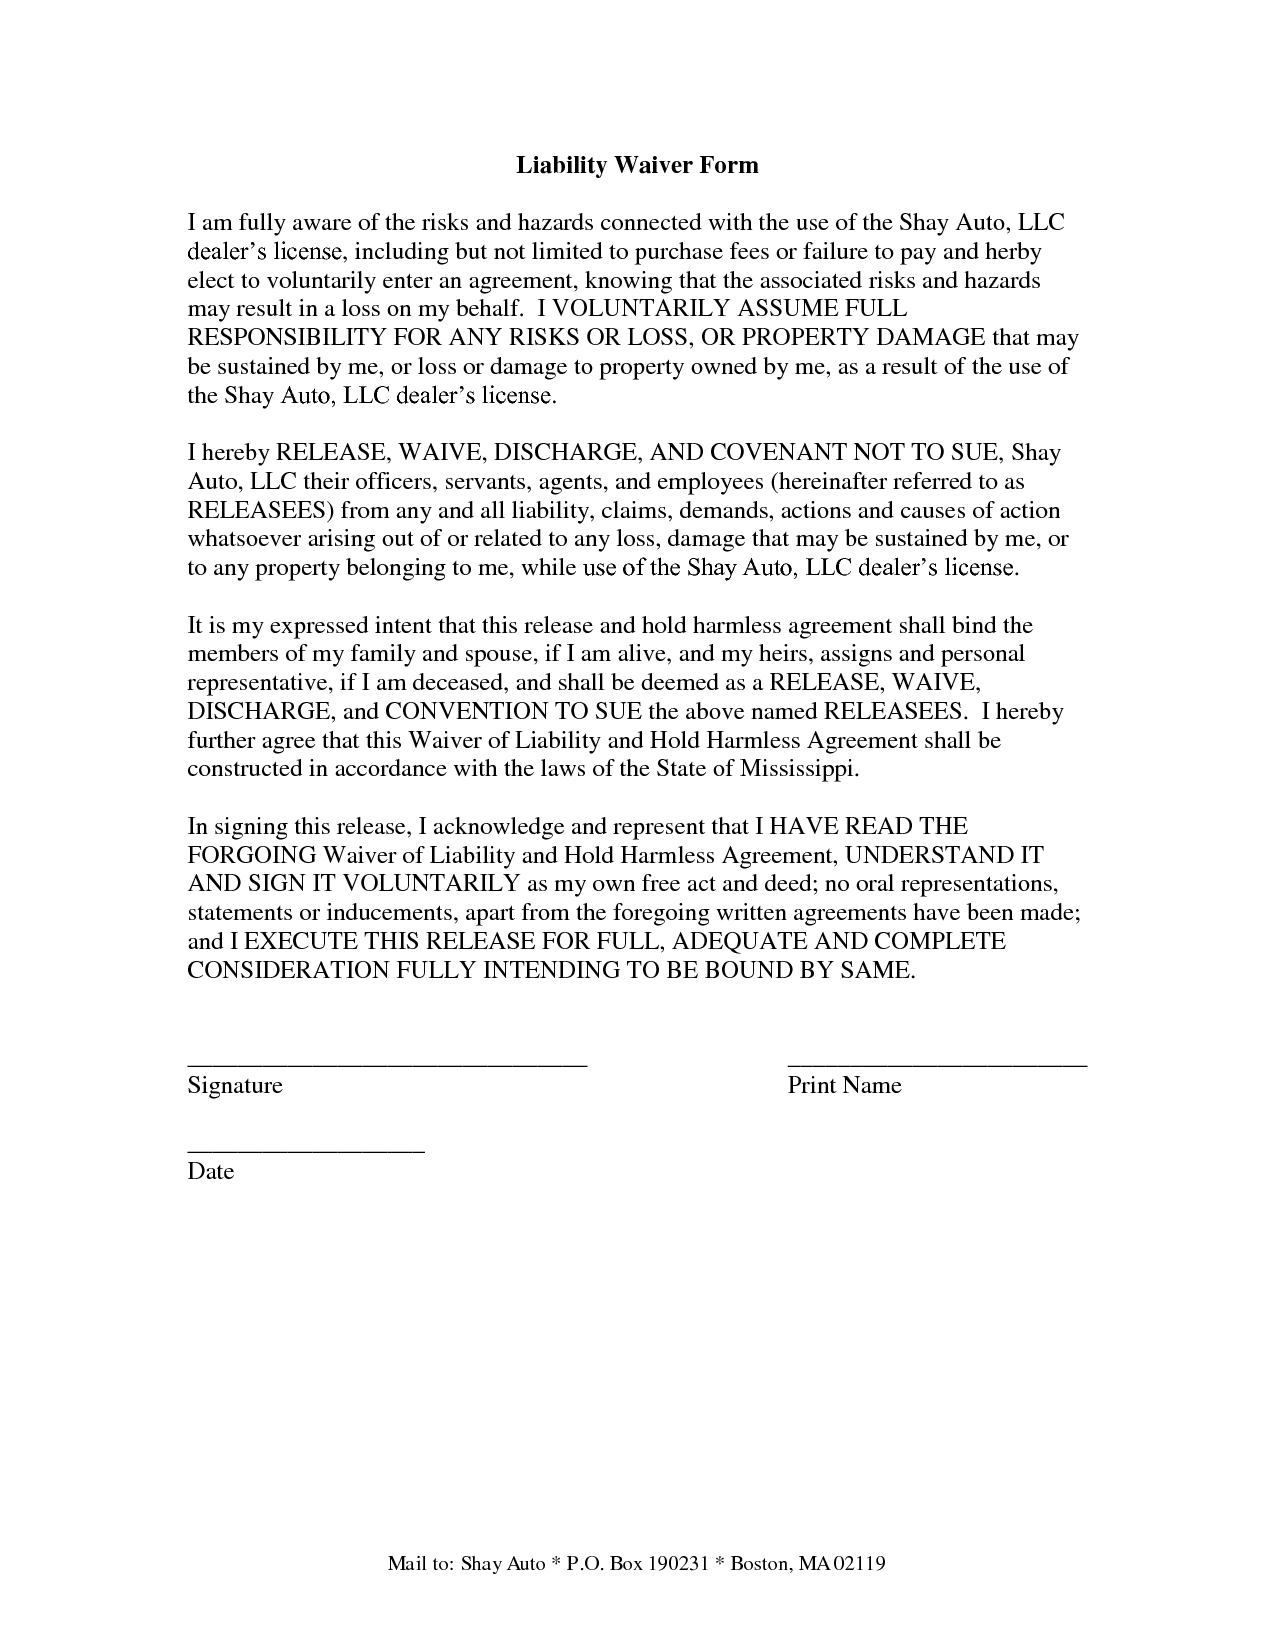 Waiver Of Liability Sample Free Printable Documents Liability